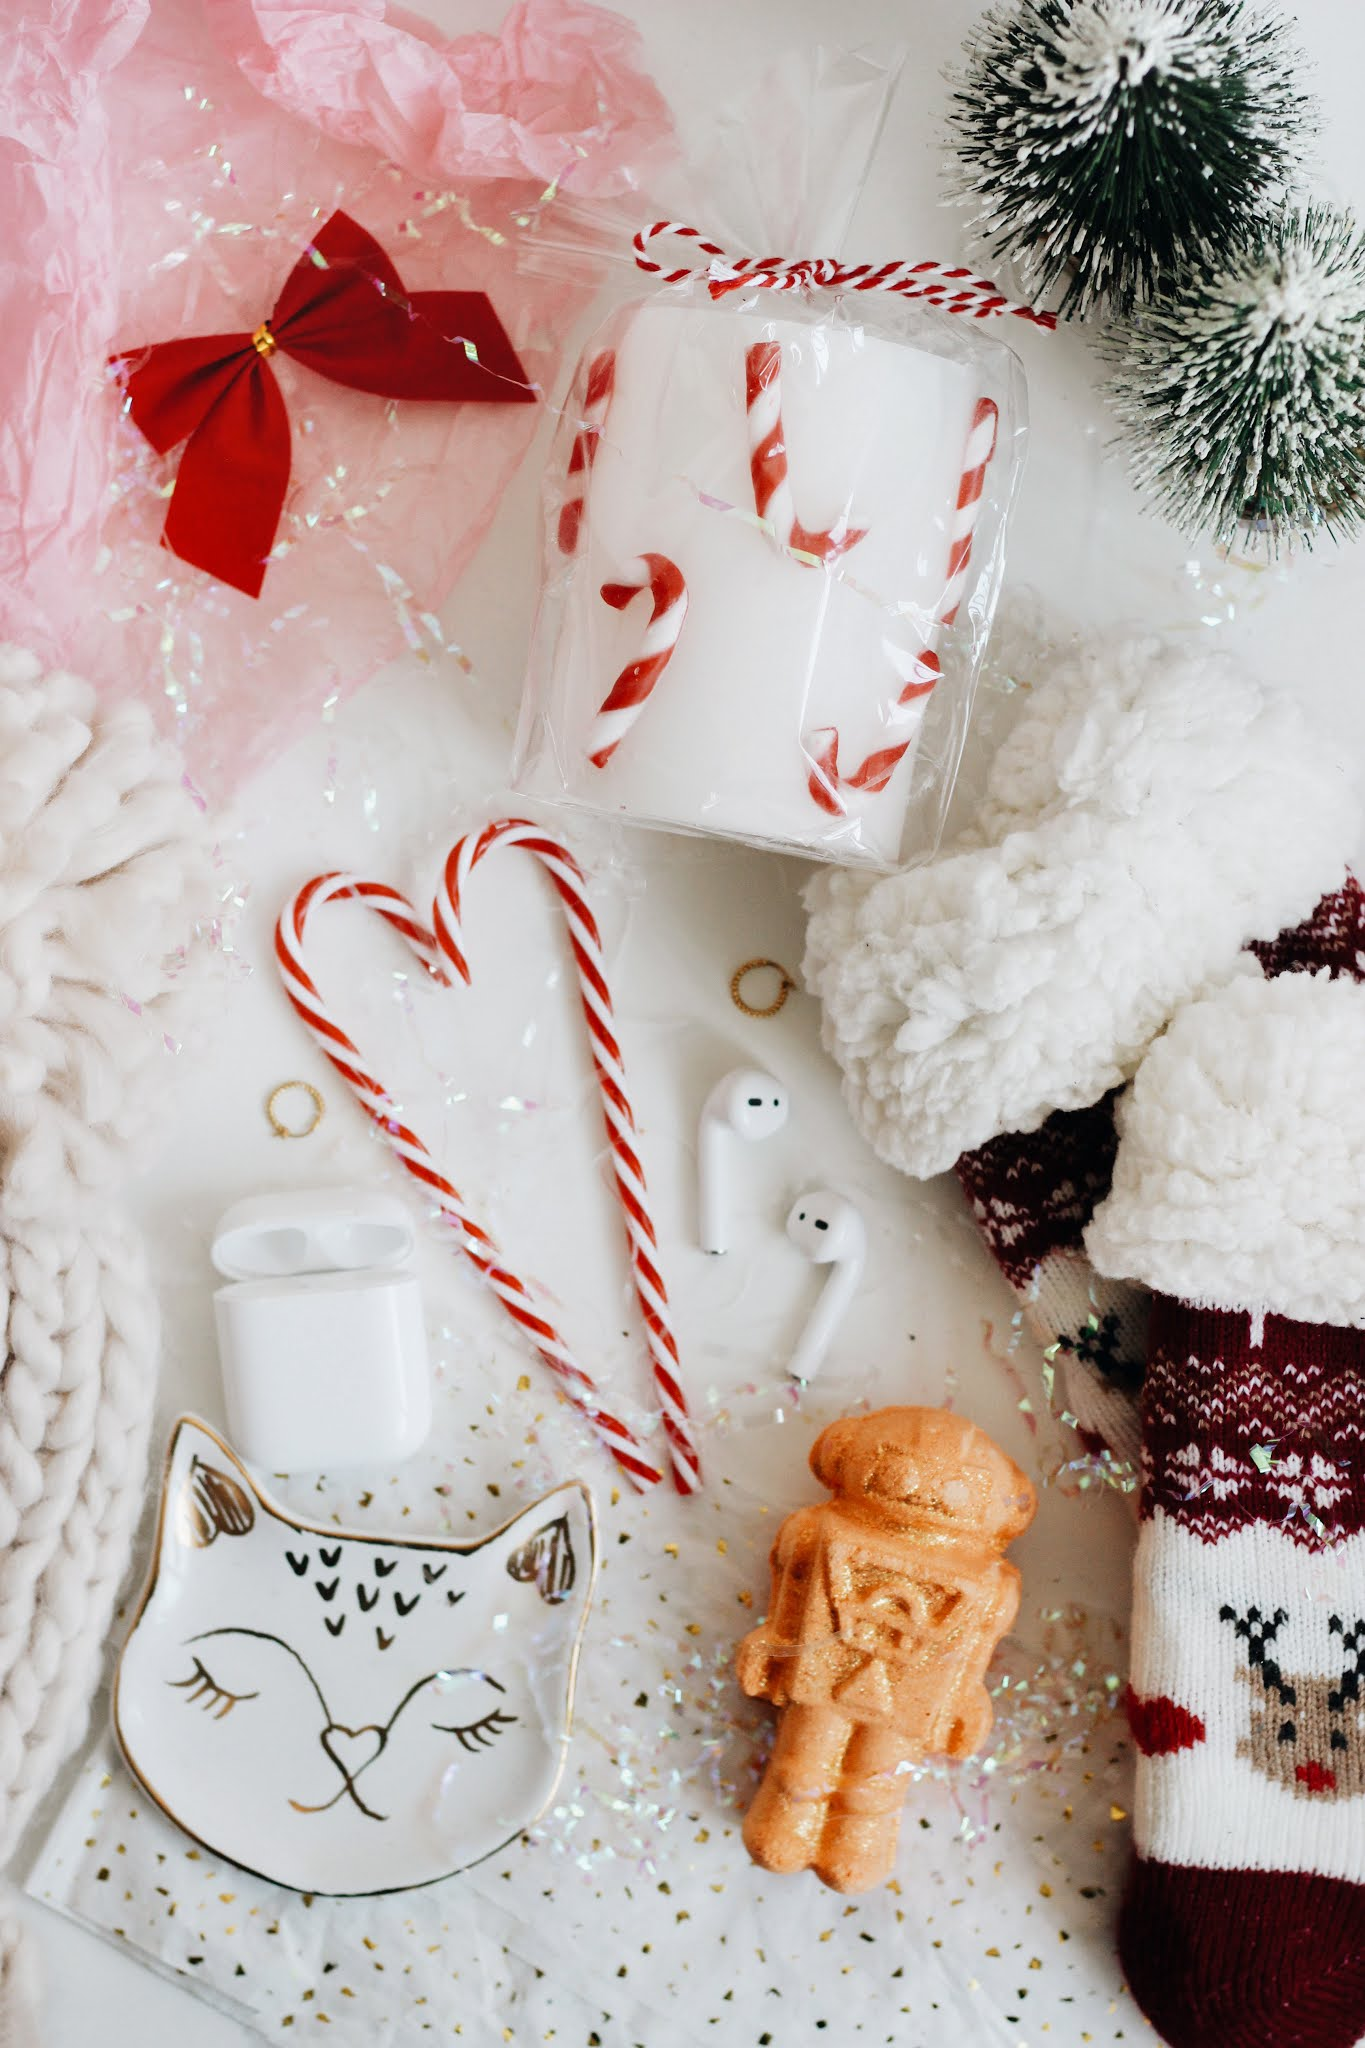 Home Lifestyle Christmas Gift Guide